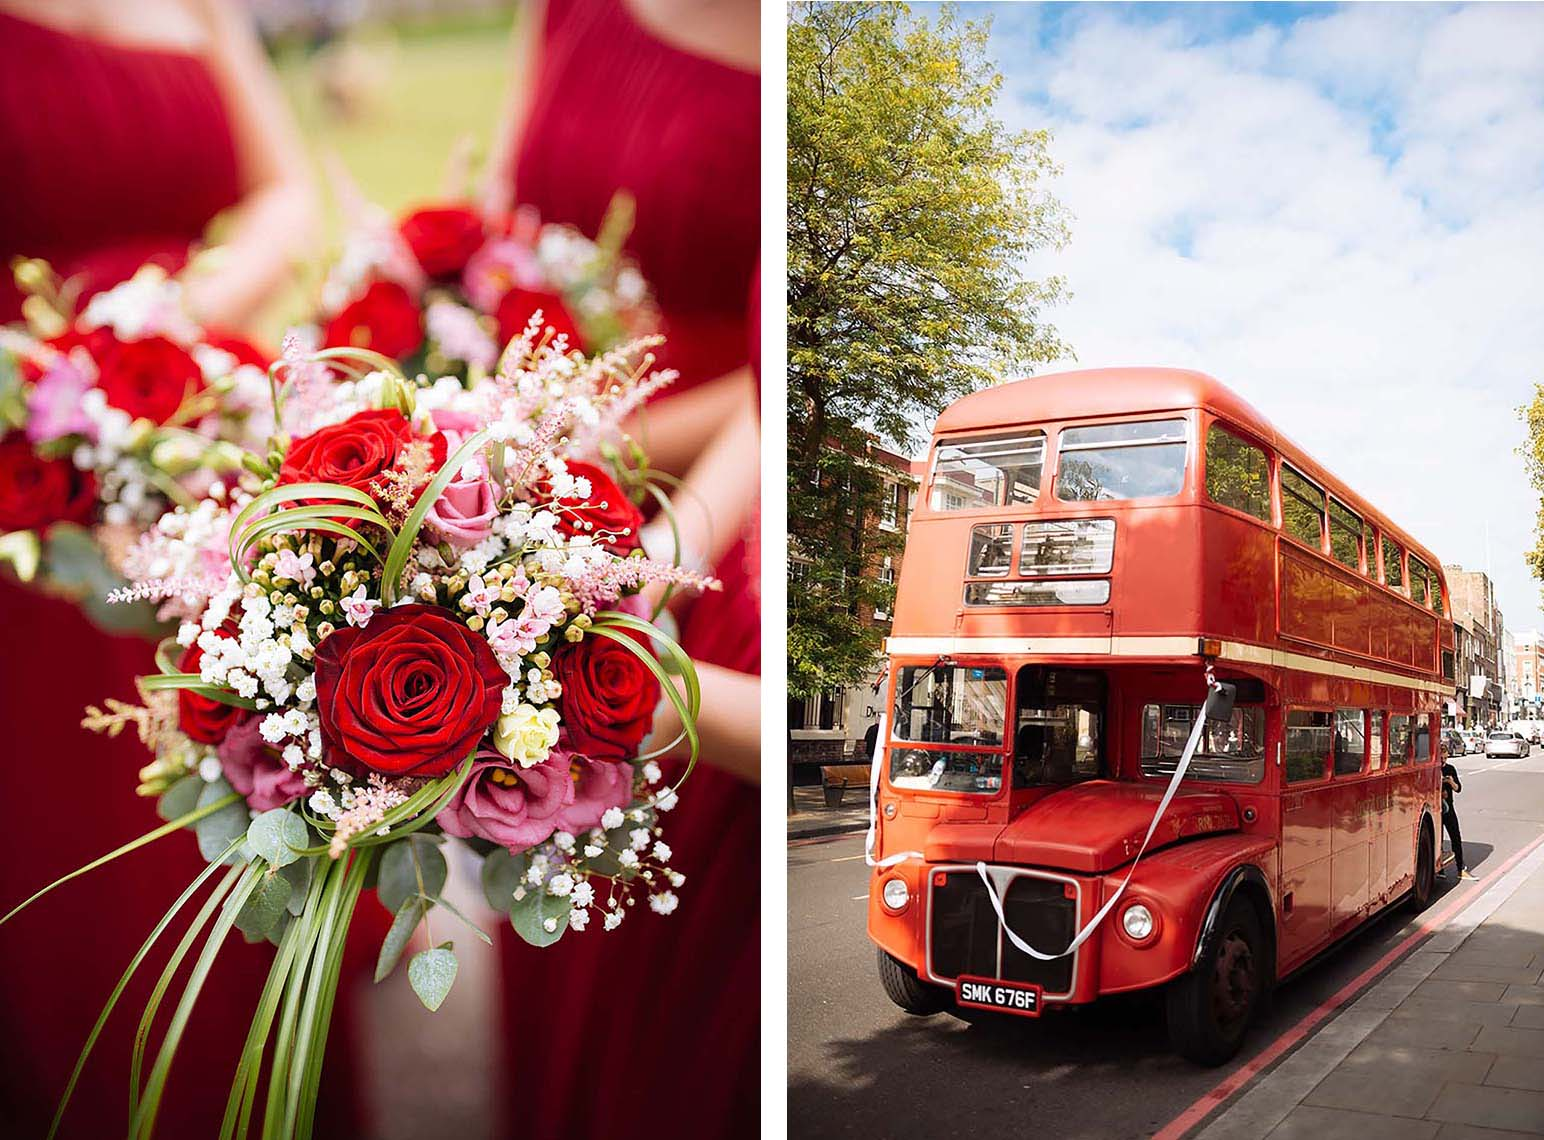 red-bus-london-flowers-transport-wedding-street-10